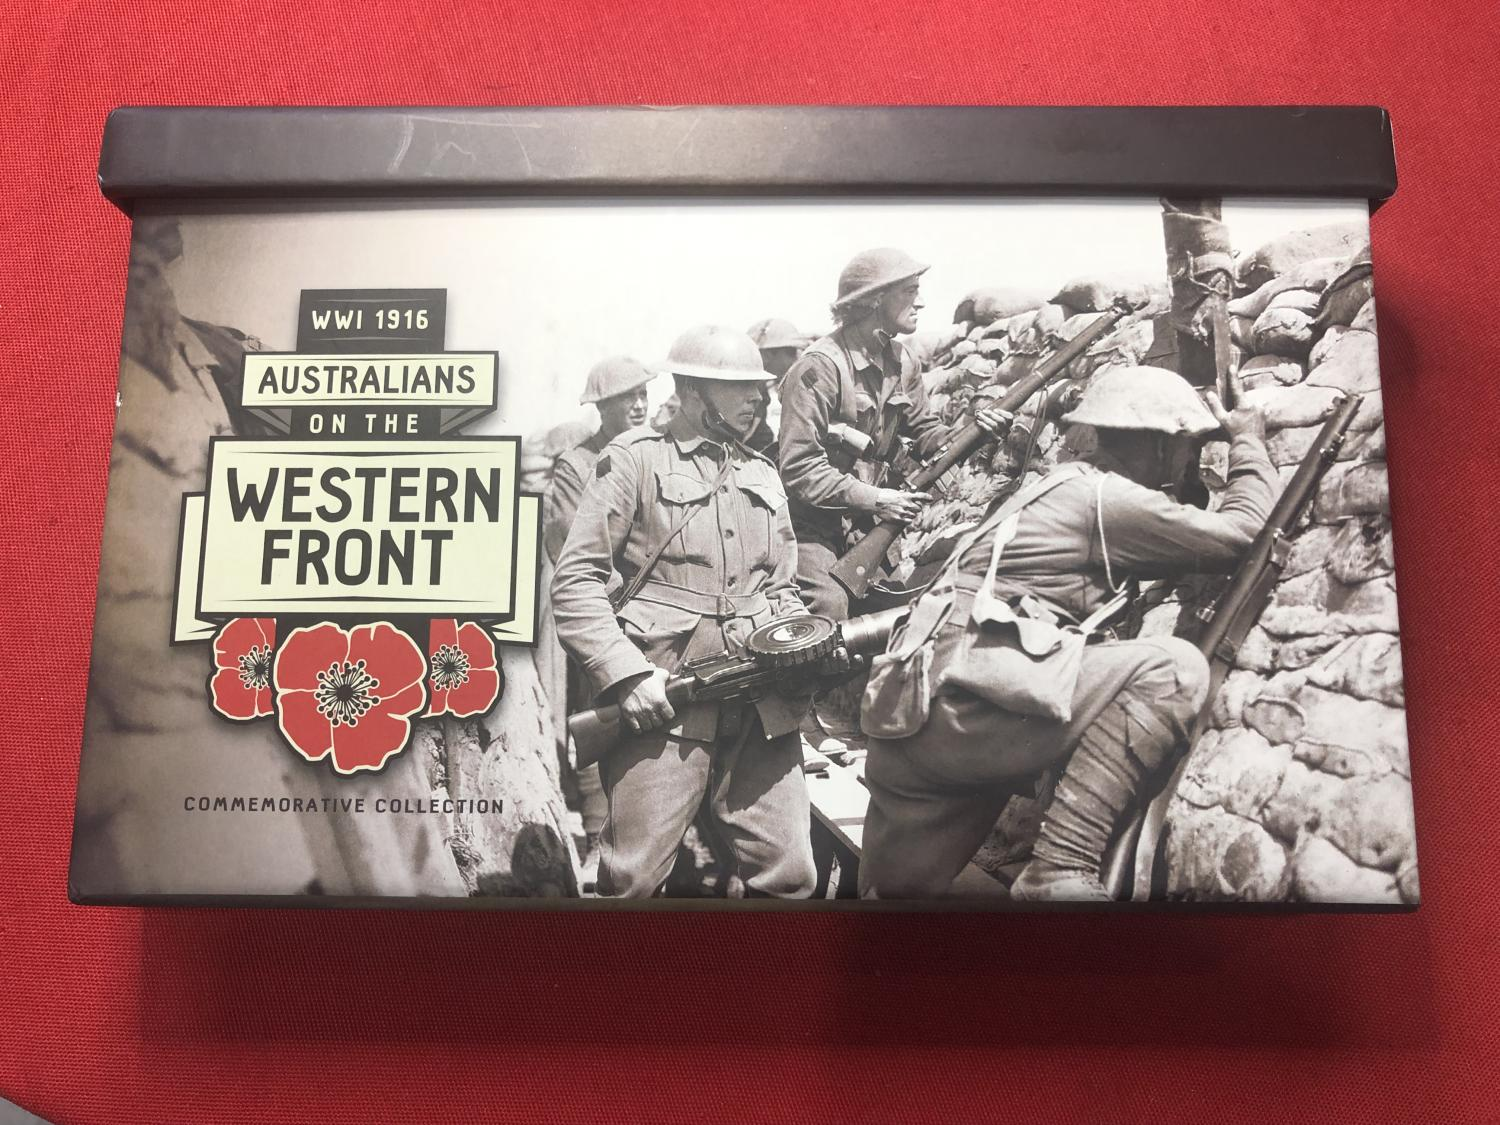 Thumbnail for 2016 Australians on the Western Front Commemorative Collection 637-1000